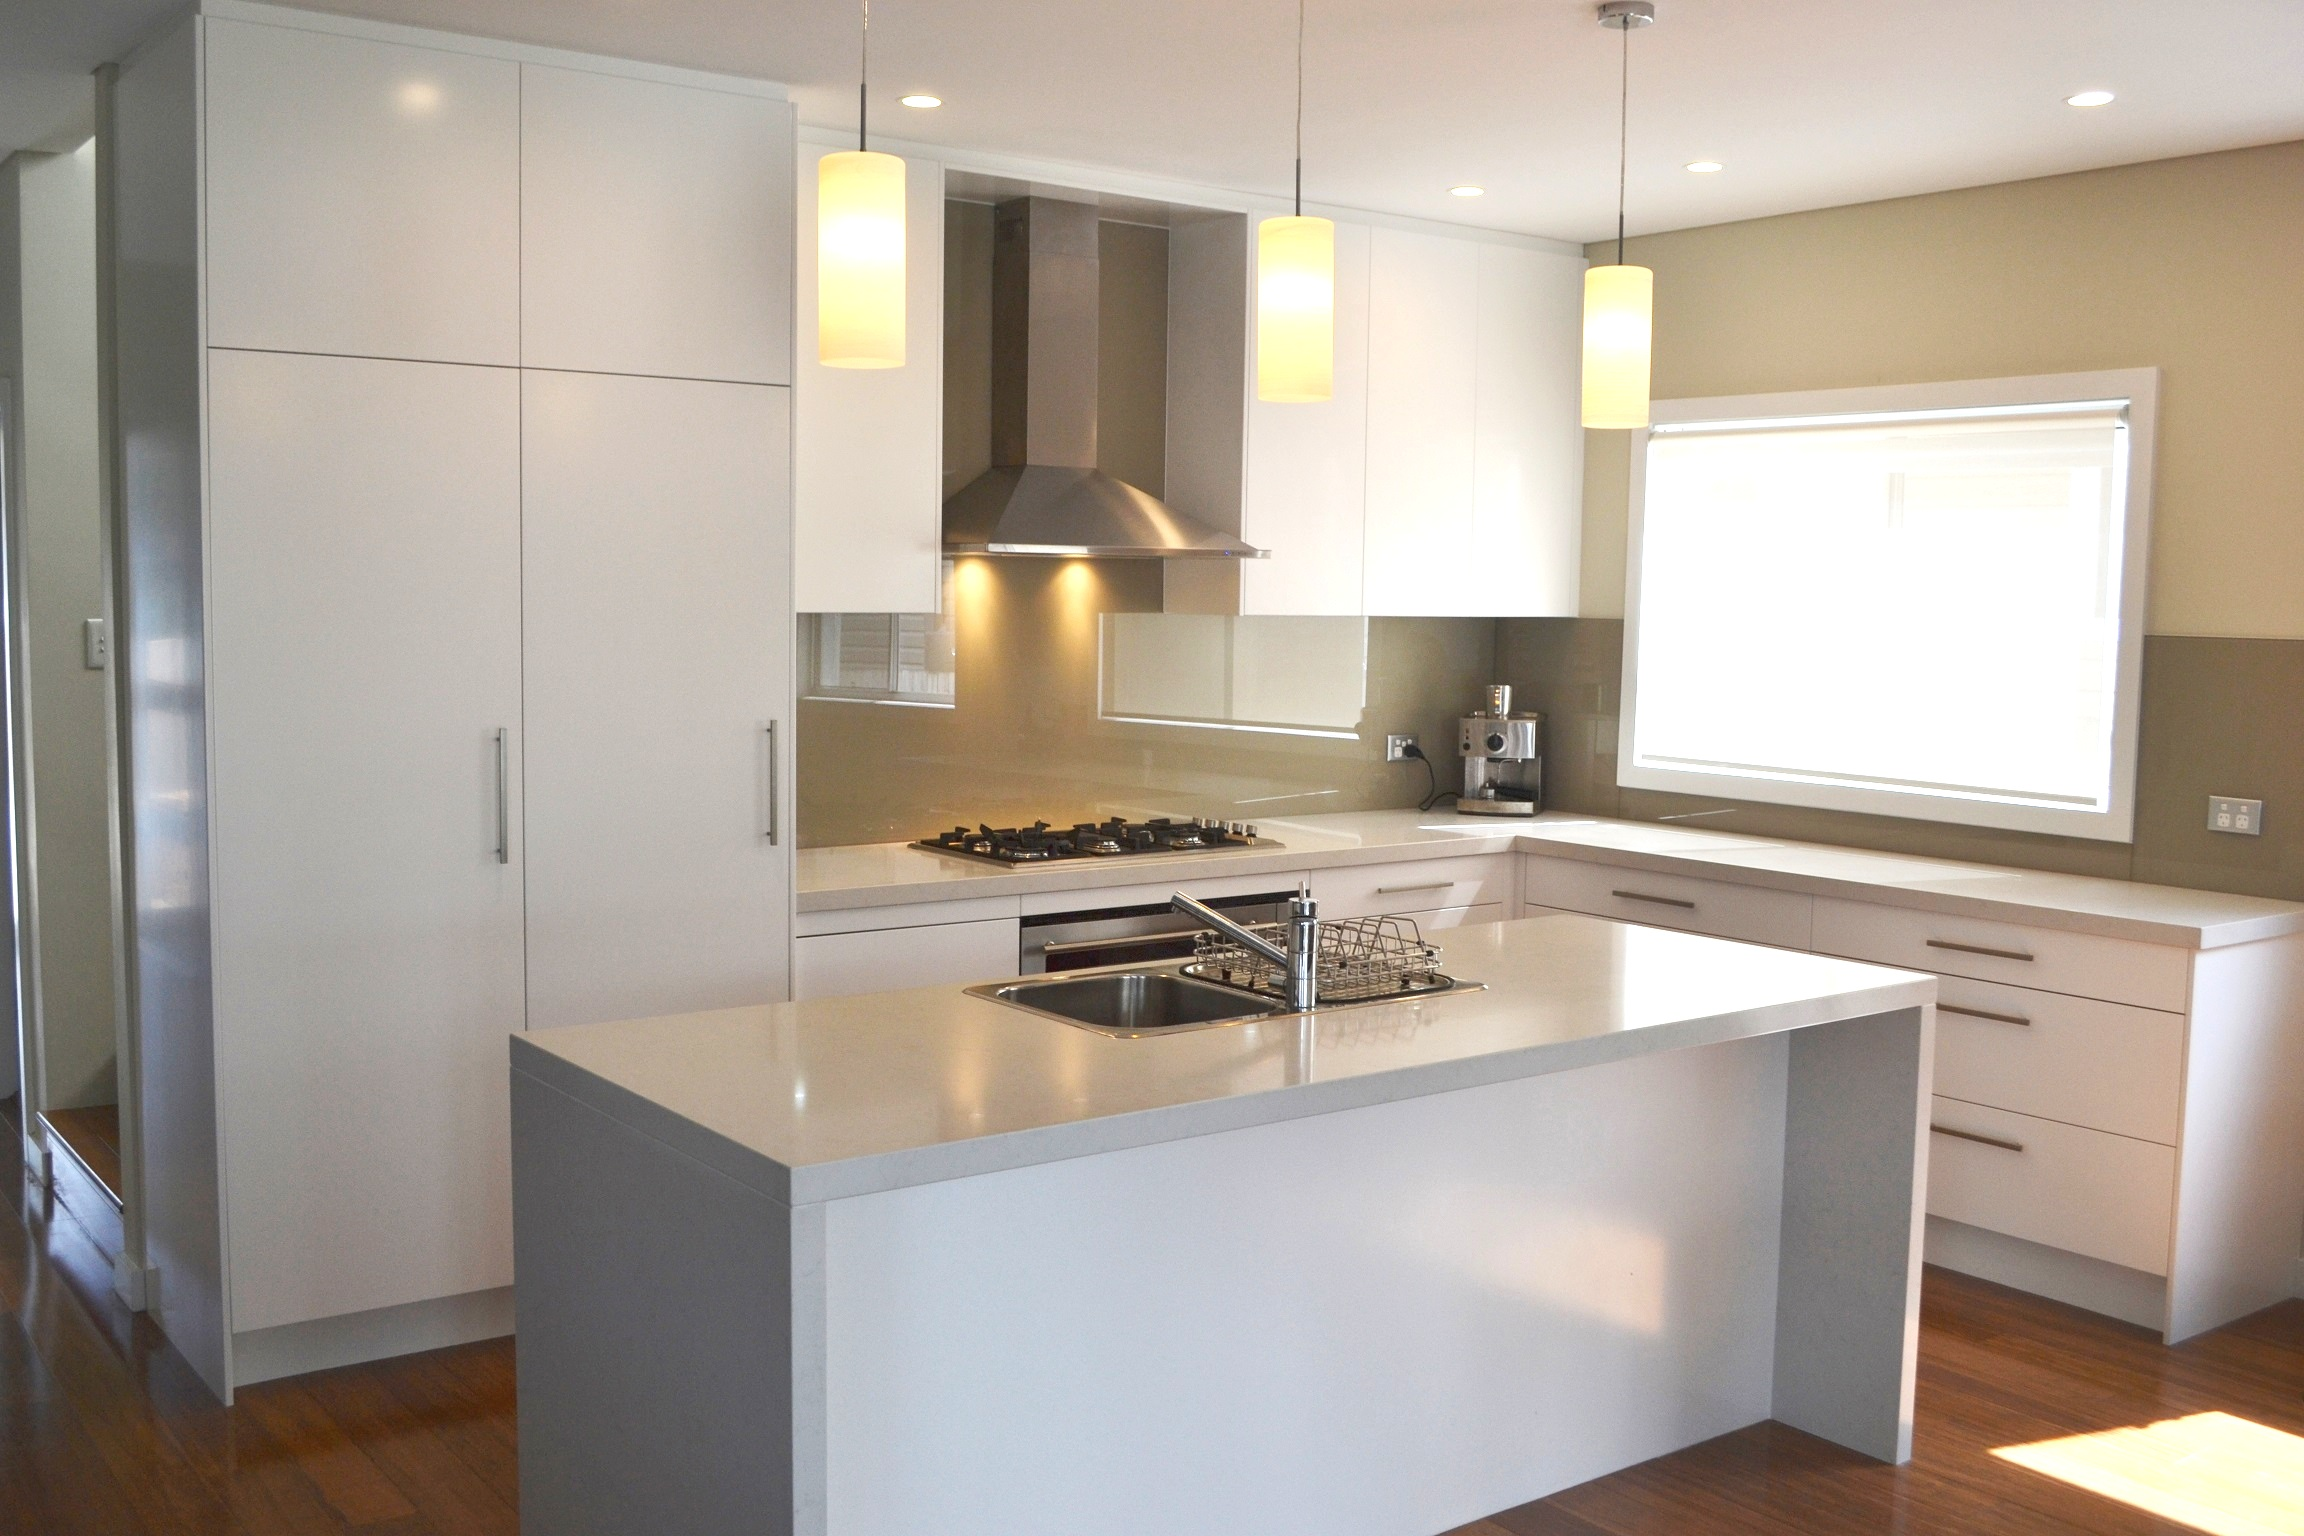 Five essential aspects of kitchen renovation cdk for Kitchen design and renovation